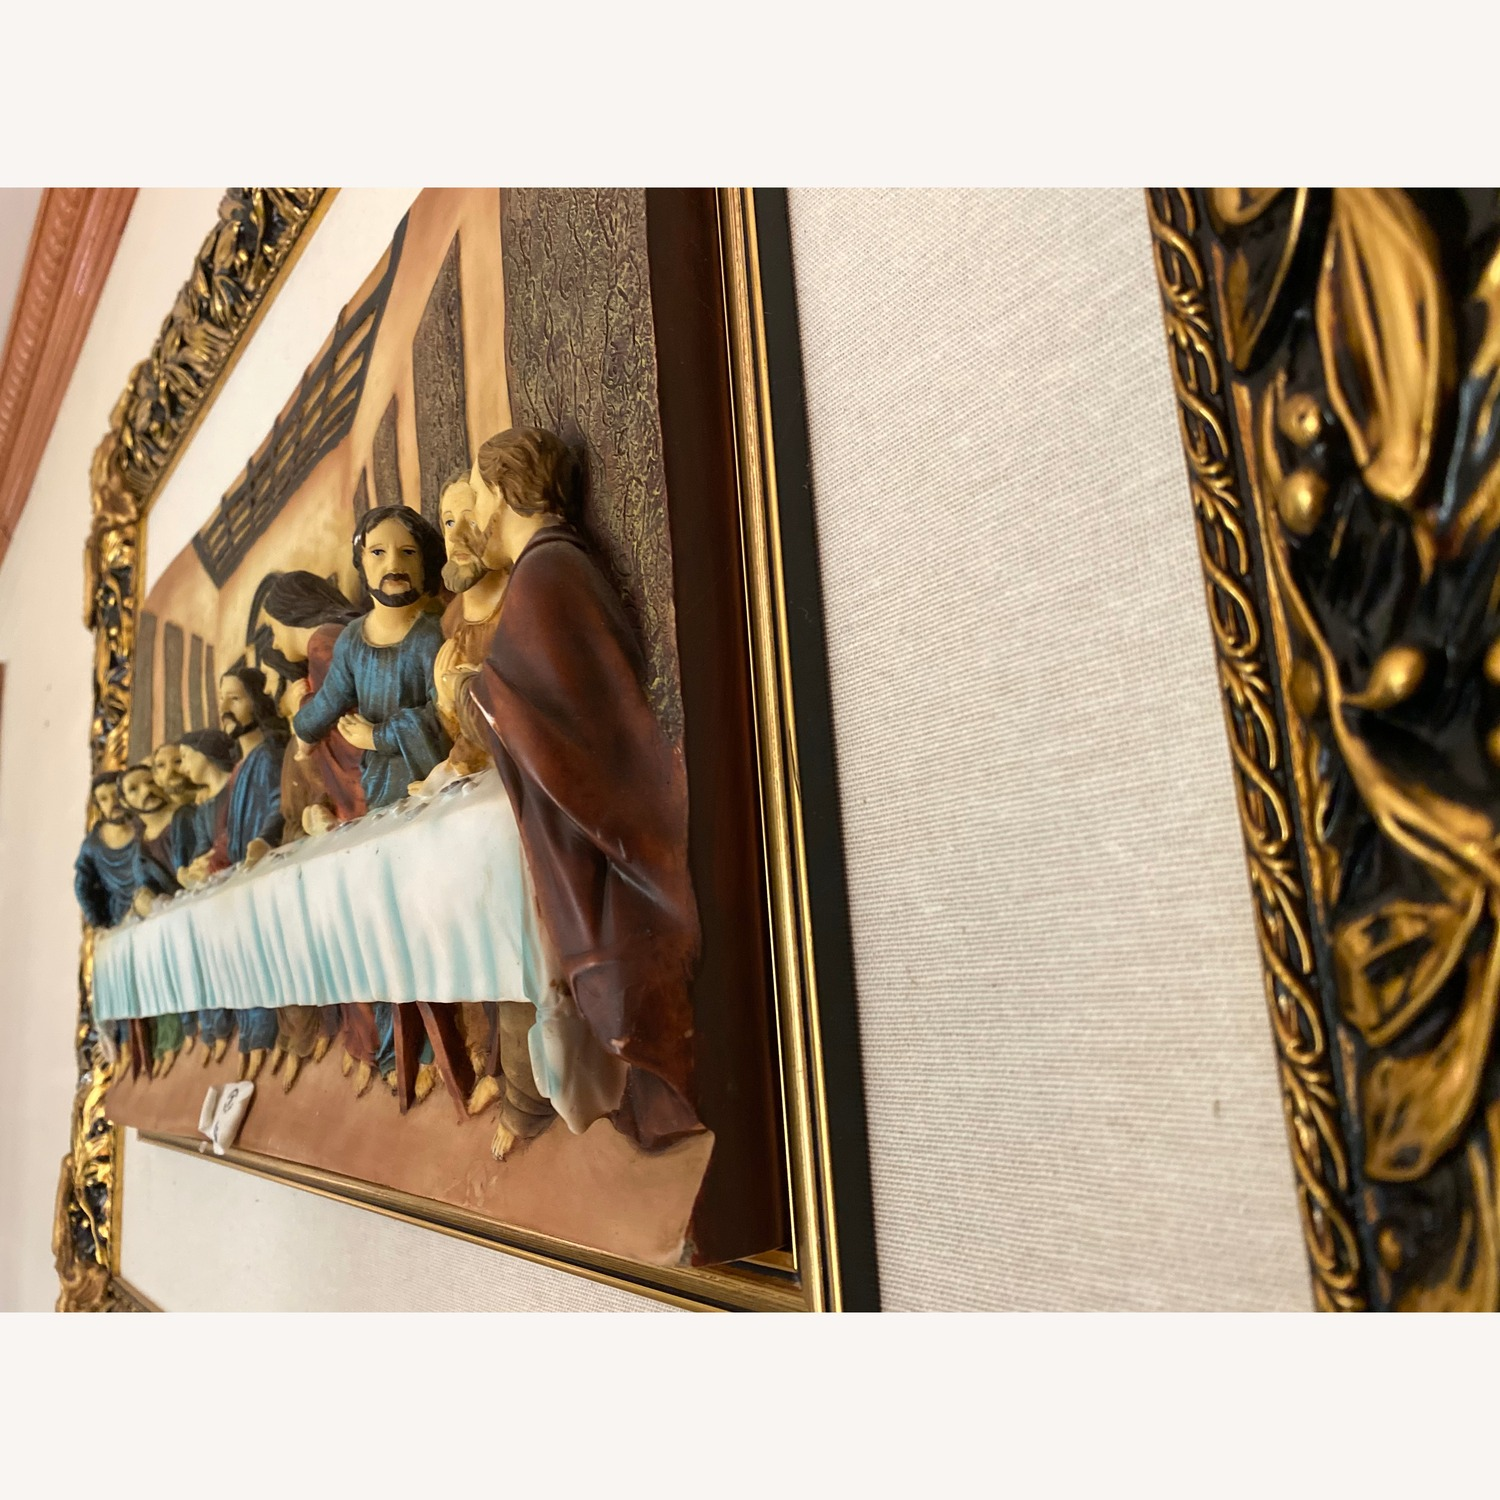 The Last Supper Porcelain Mural with Frame, Capodimonte